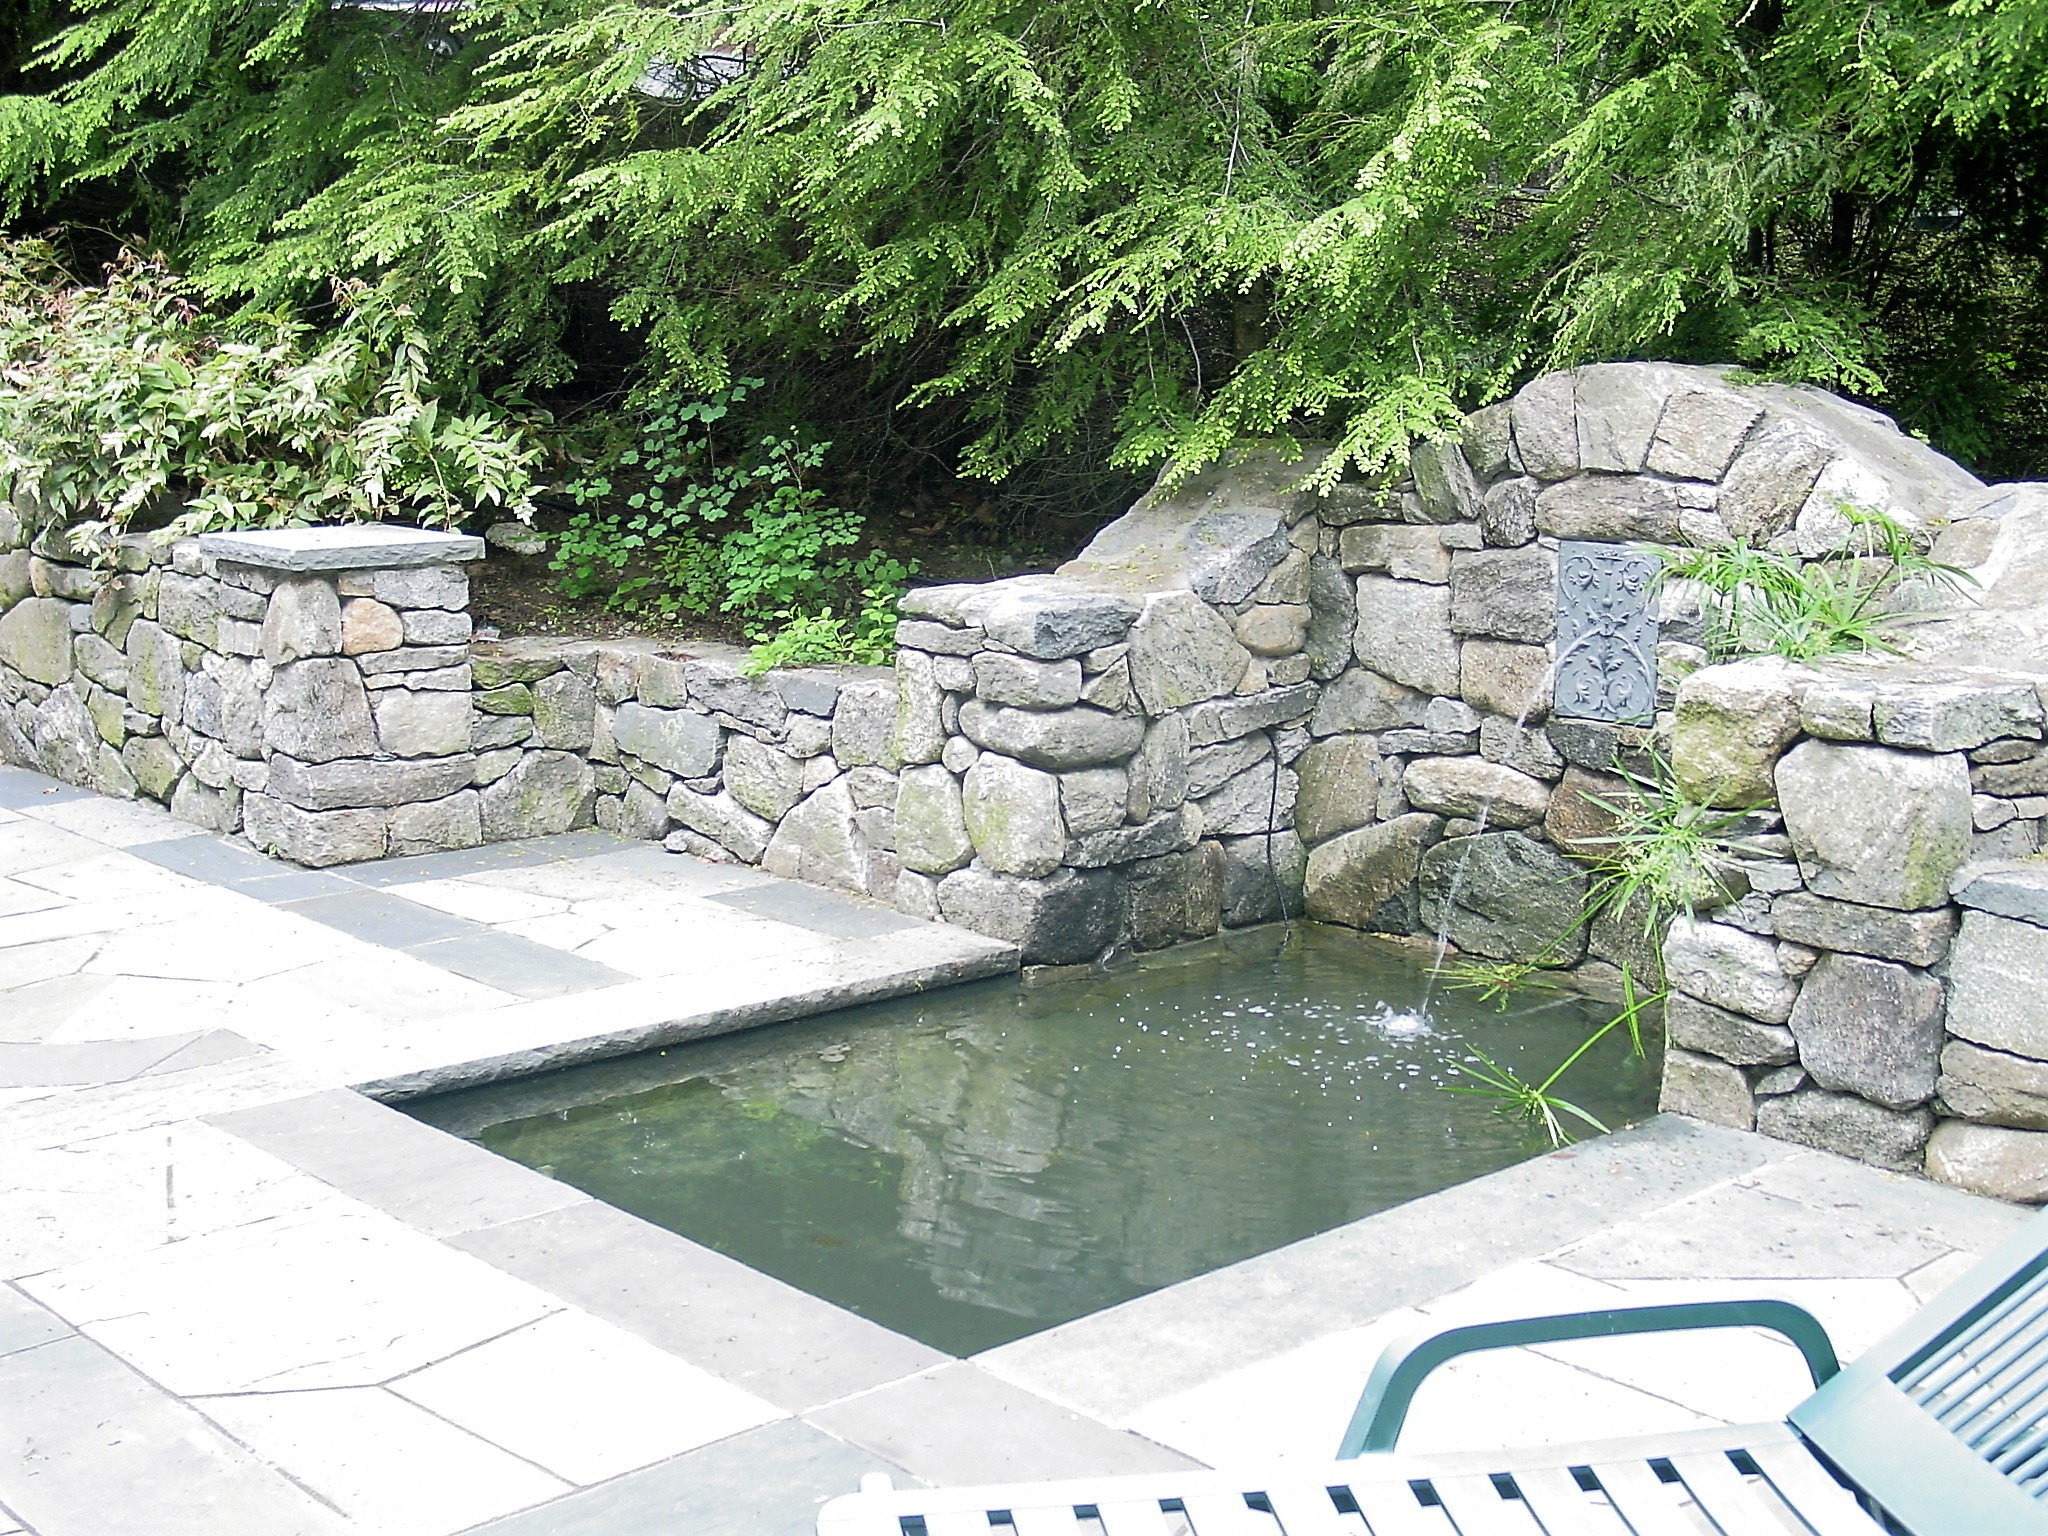 Enjoy the peaceful sound and beauty of a water feature right in your backyard.